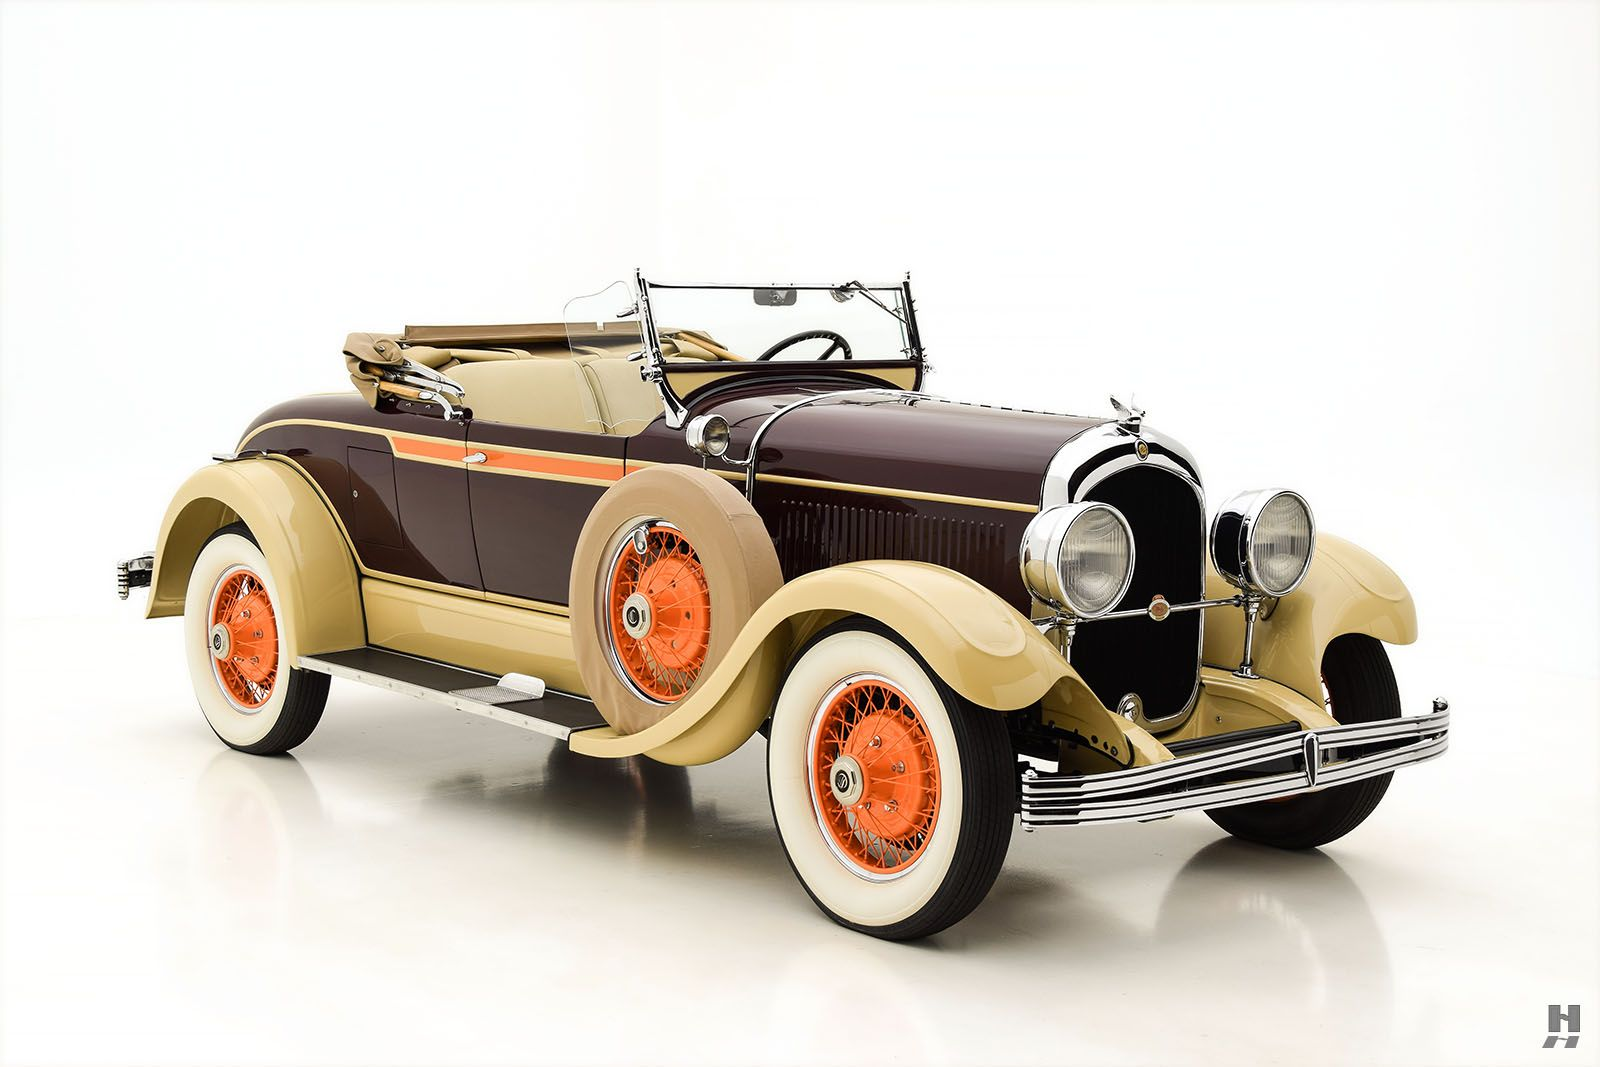 1928 CHRYSLER MODEL 72 ROADSTER | antique cars HYMAN LTO. inventory ...